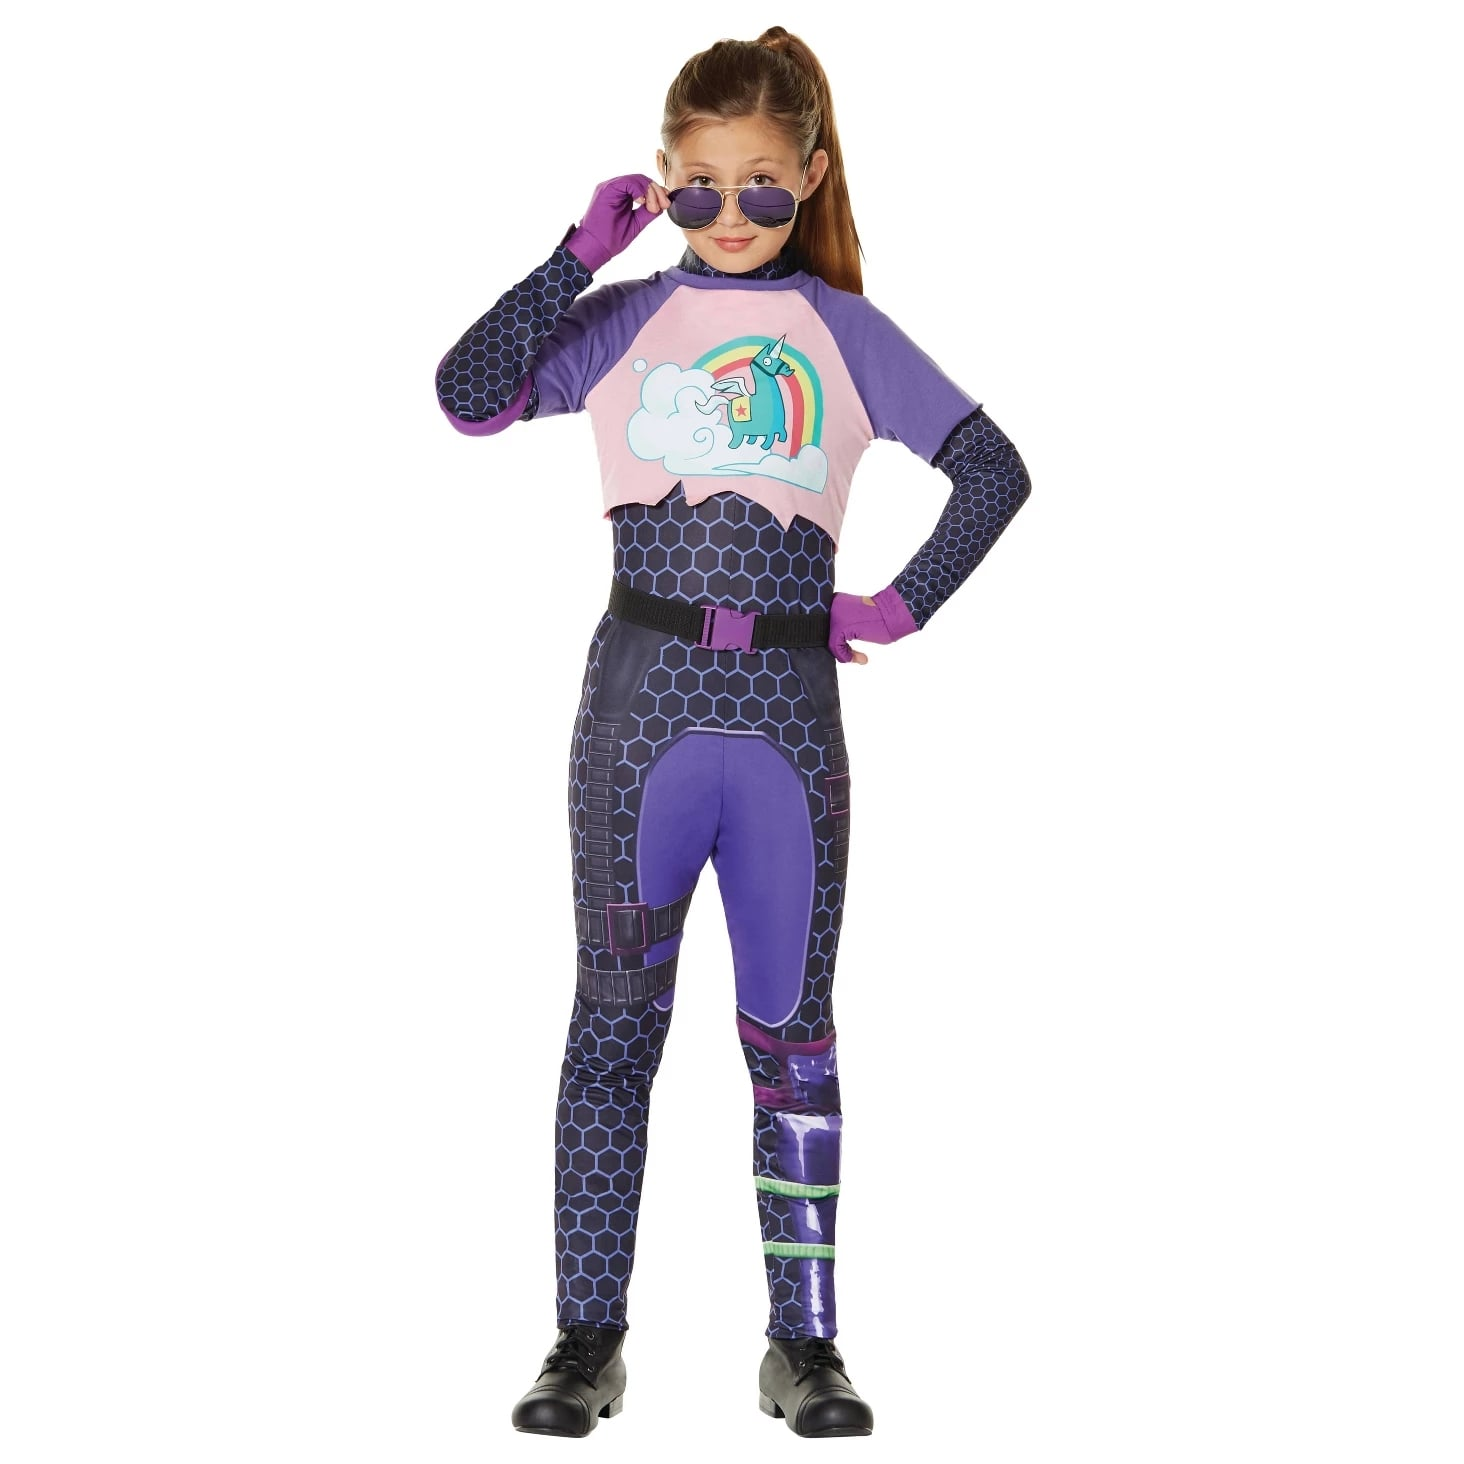 Kids\u0027 Fortnite Brite Bomber Halloween Costume